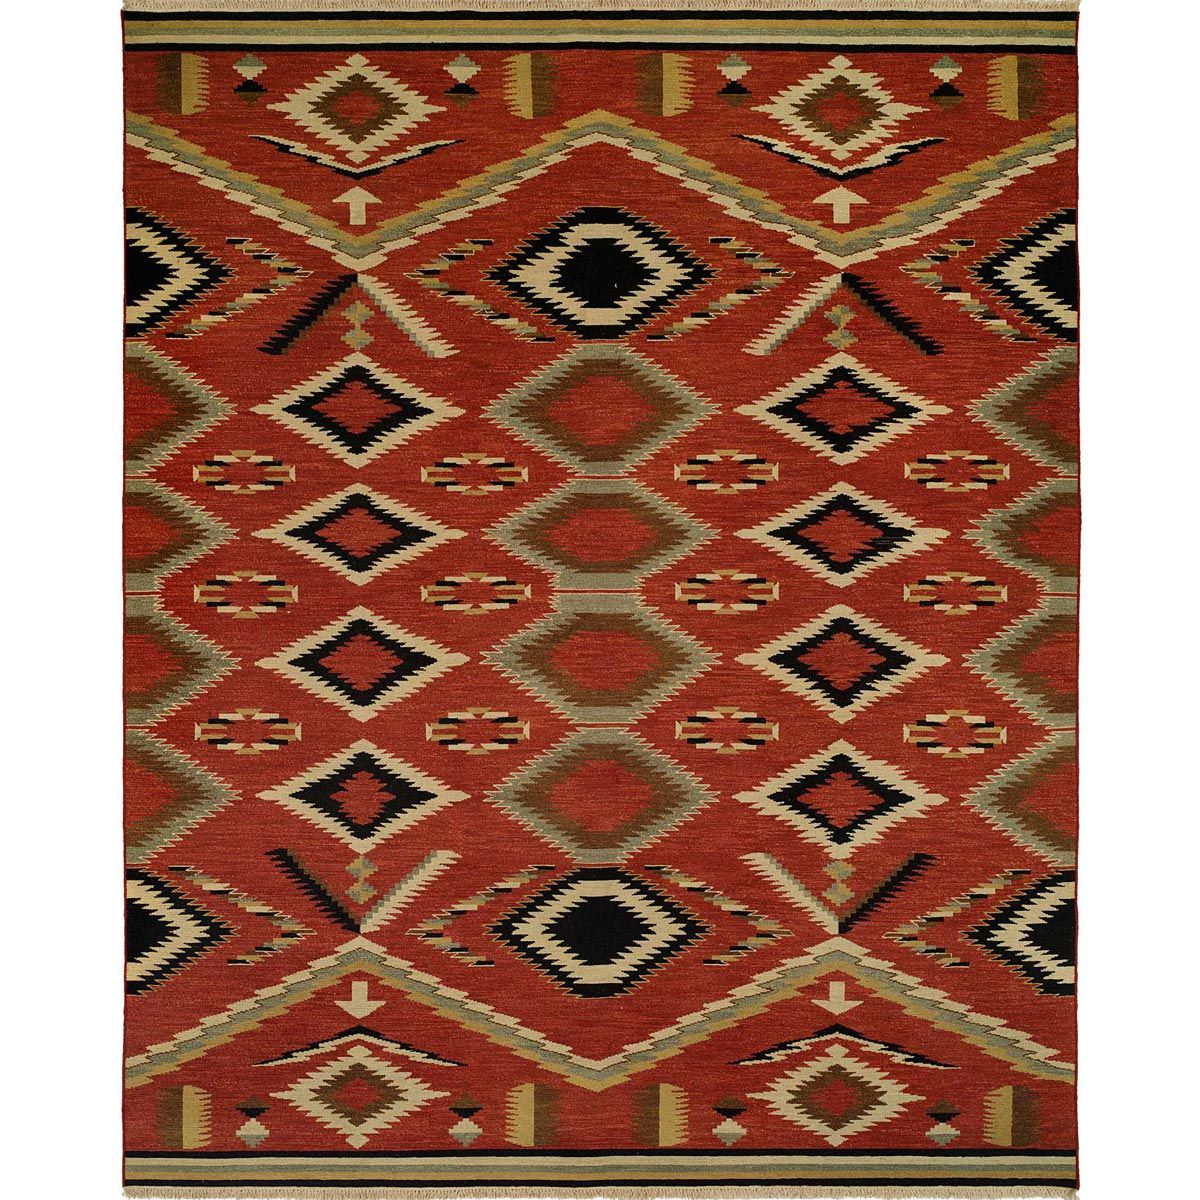 August Sunset Rug - 3 x 5